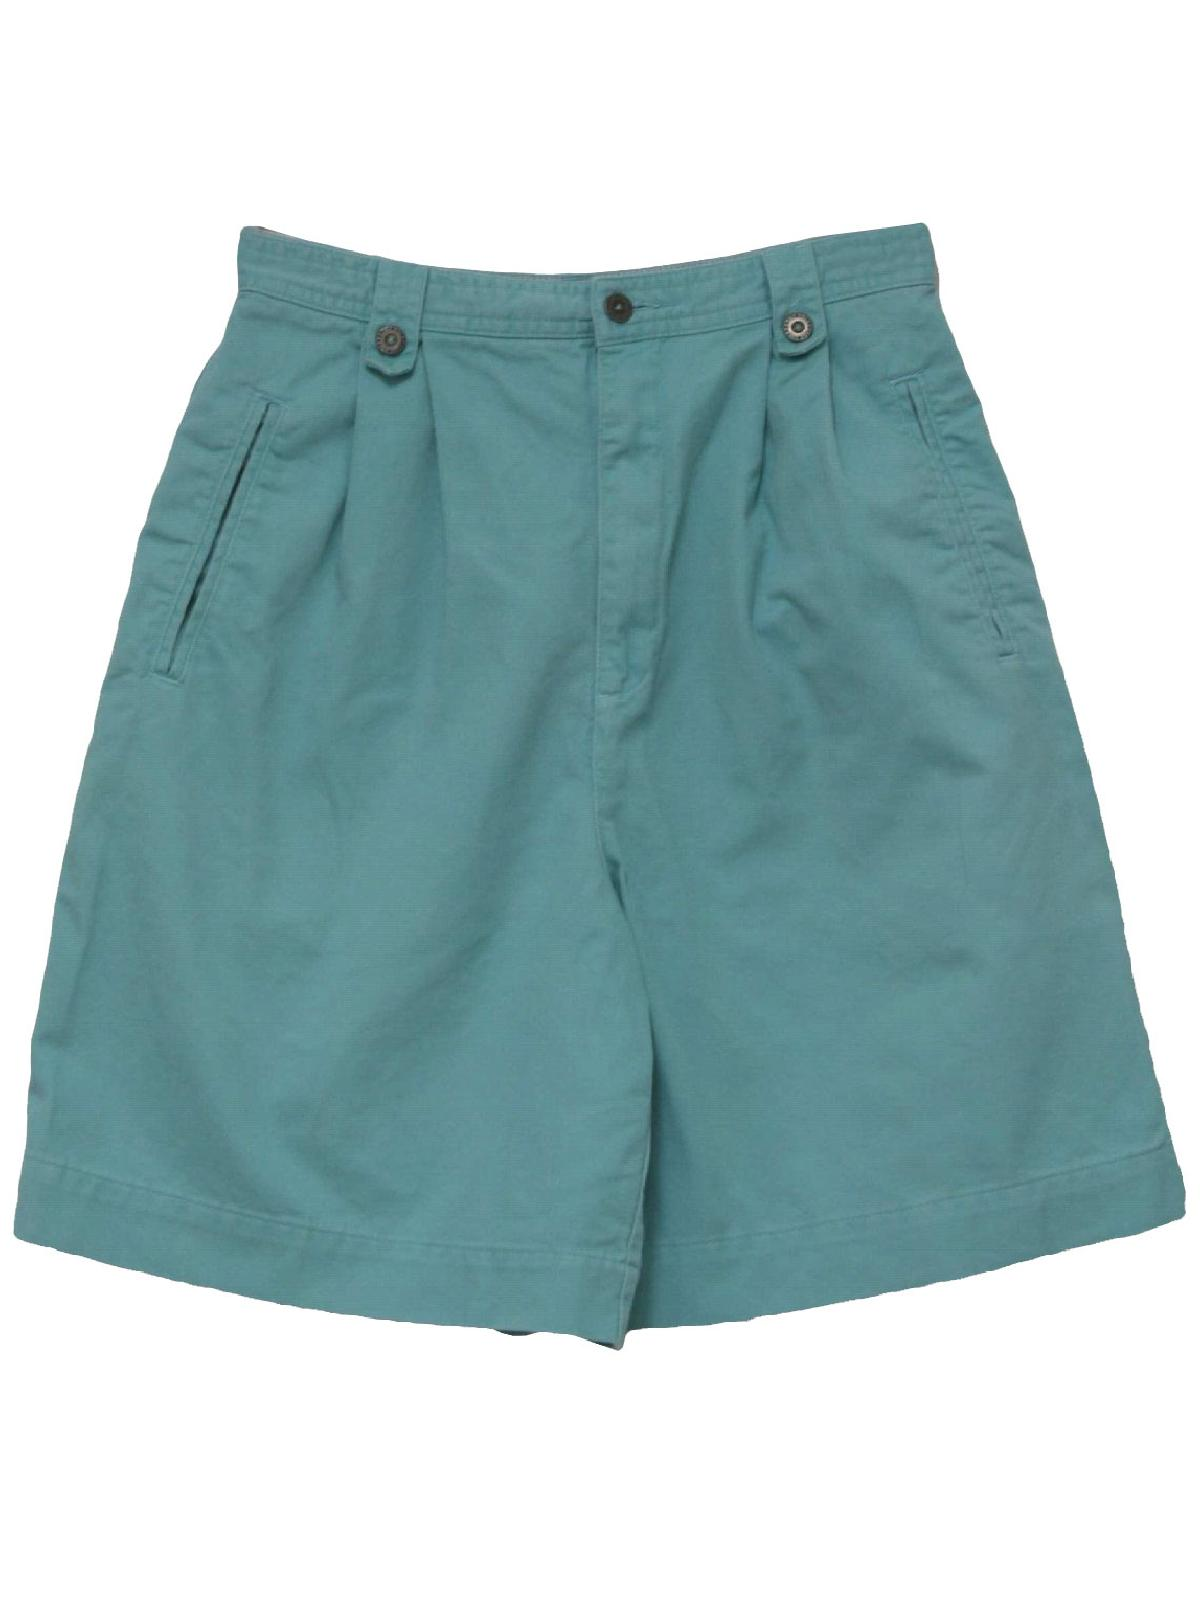 Womens teal blue thick cotton high waist wicked 90s shorts with button/zip front closure, deep pleated waistline, classic three pocket styling and wide legs.